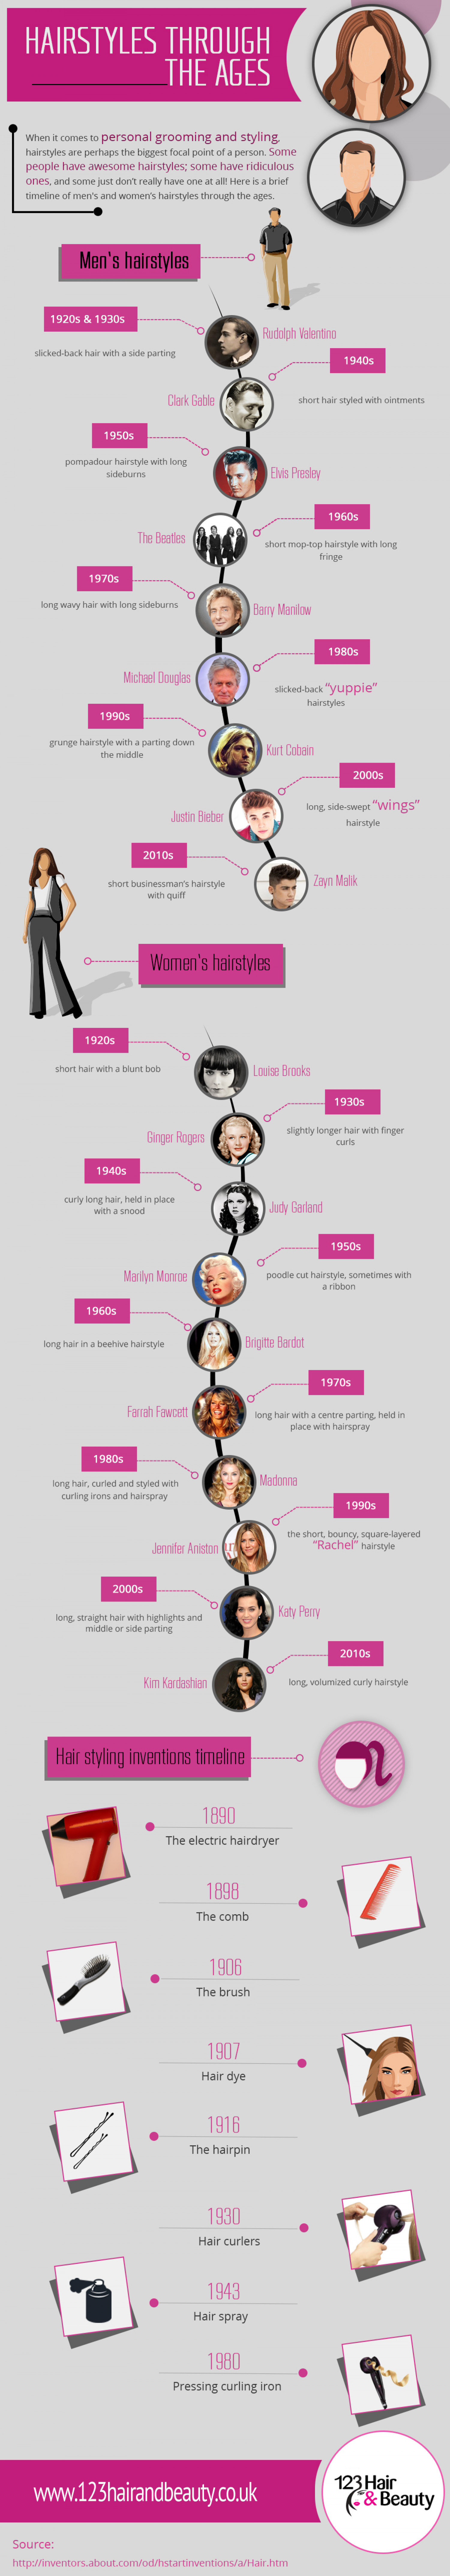 Hairstyles Through The Ages Infographic